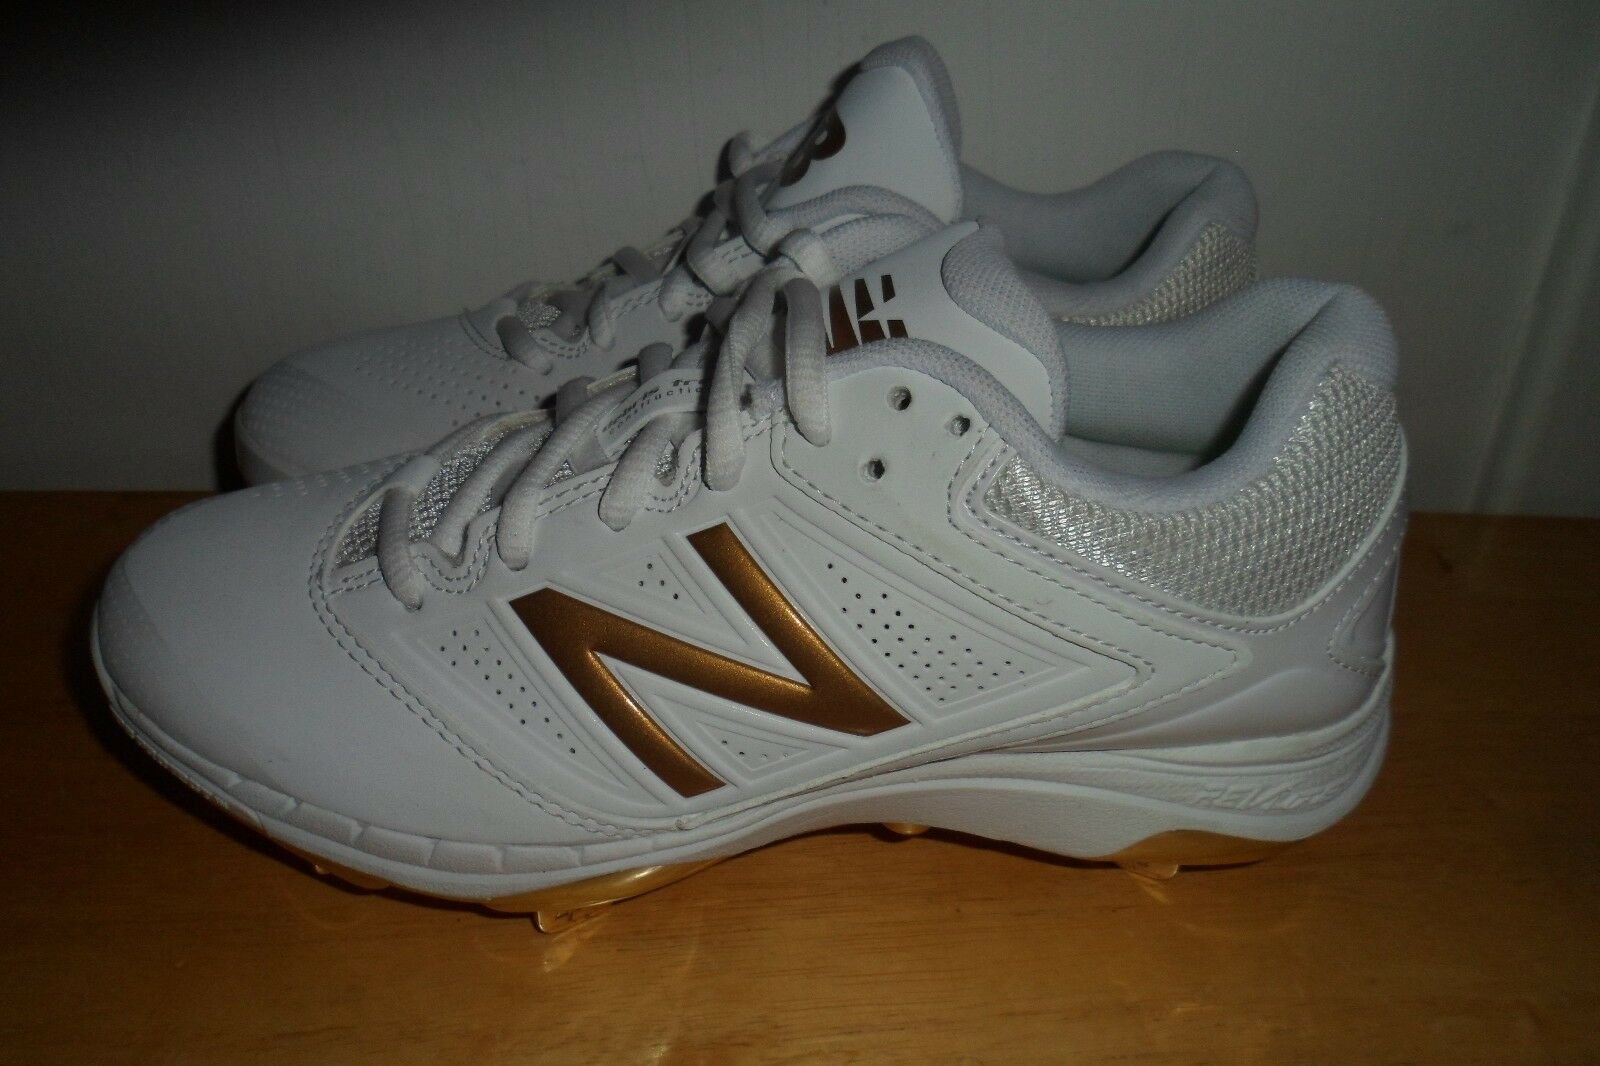 NWOT  2017 New Balance Low Fastpitch Metal Cleats SM4040X1 4040v1 gold 5 B